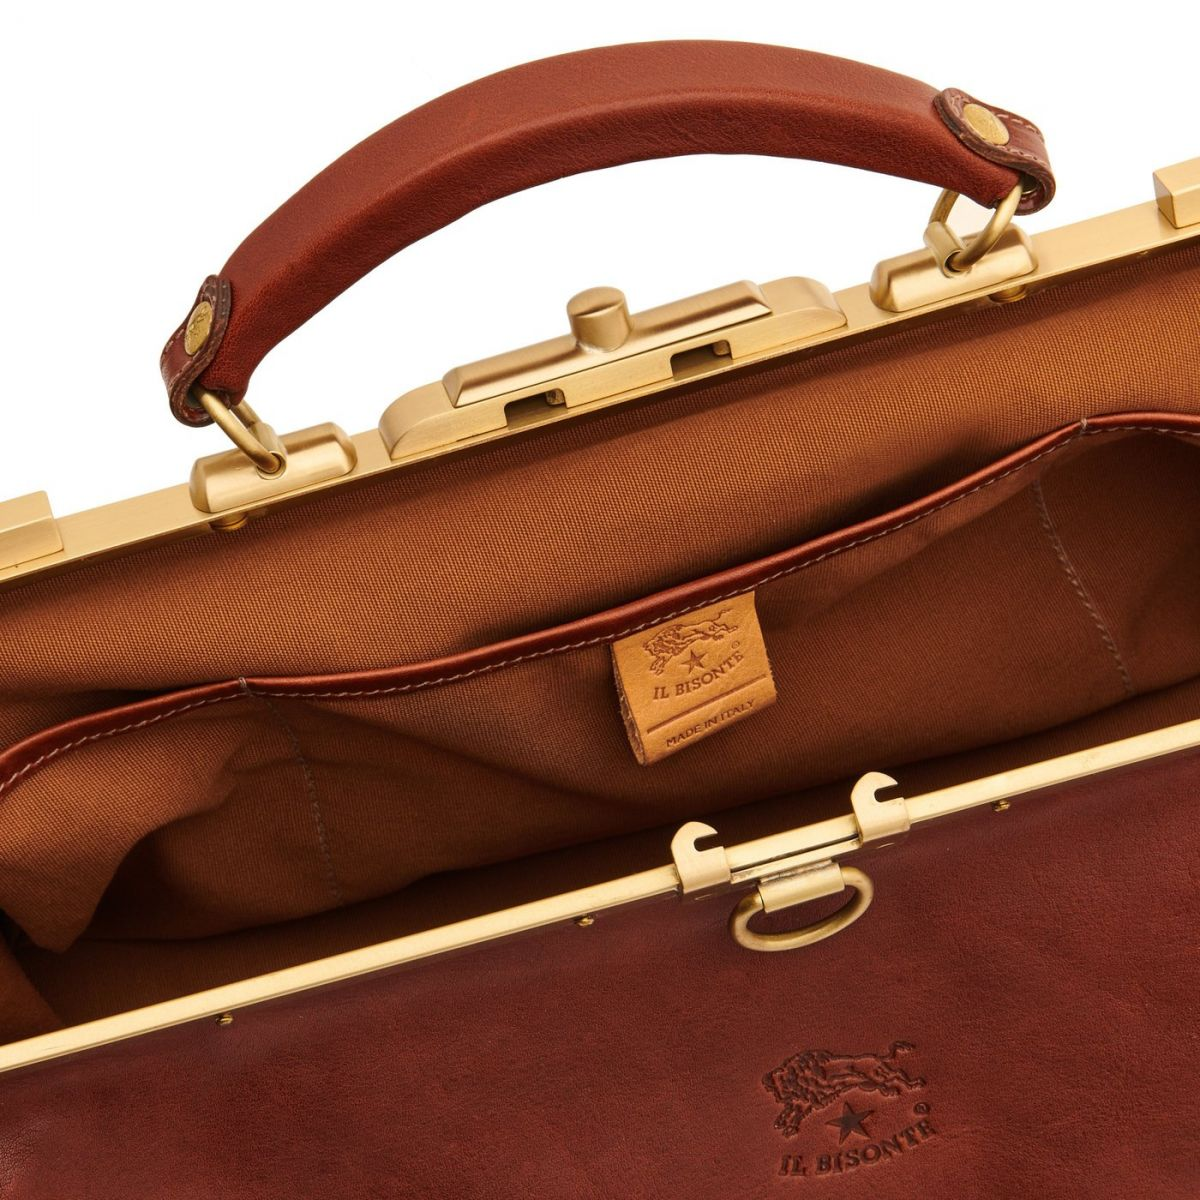 Briefcase in Vintage Cowhide Leather BBC007 color Dark Brown Seppia | Details